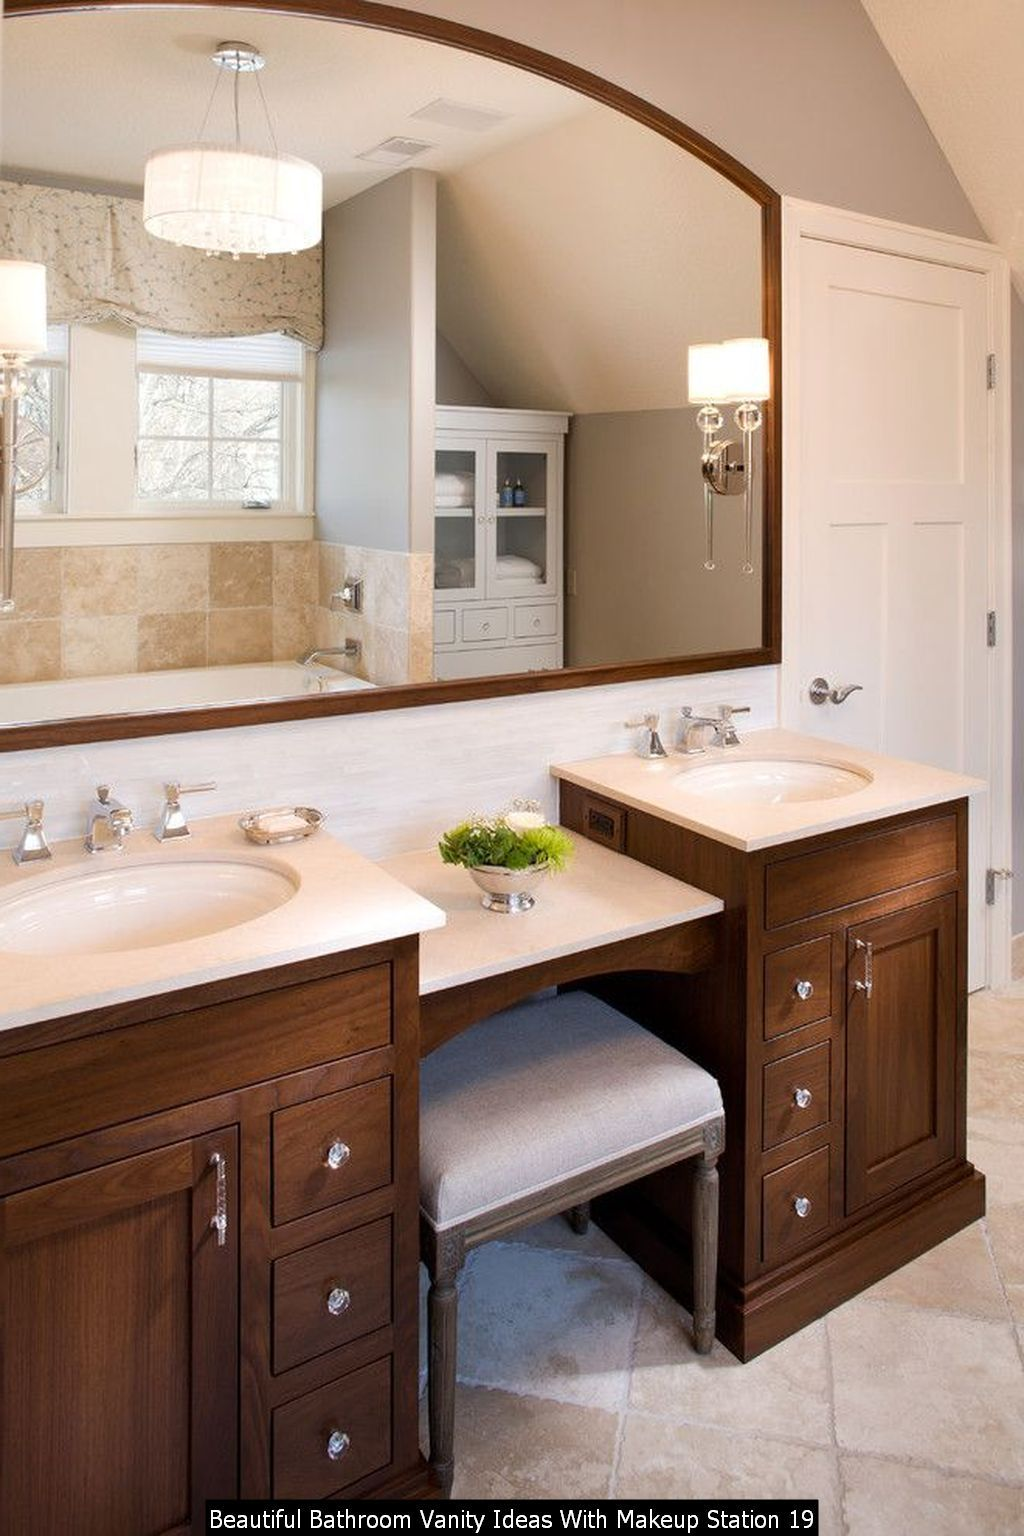 30+ Beautiful Bathroom Vanity Ideas With Makeup Station in